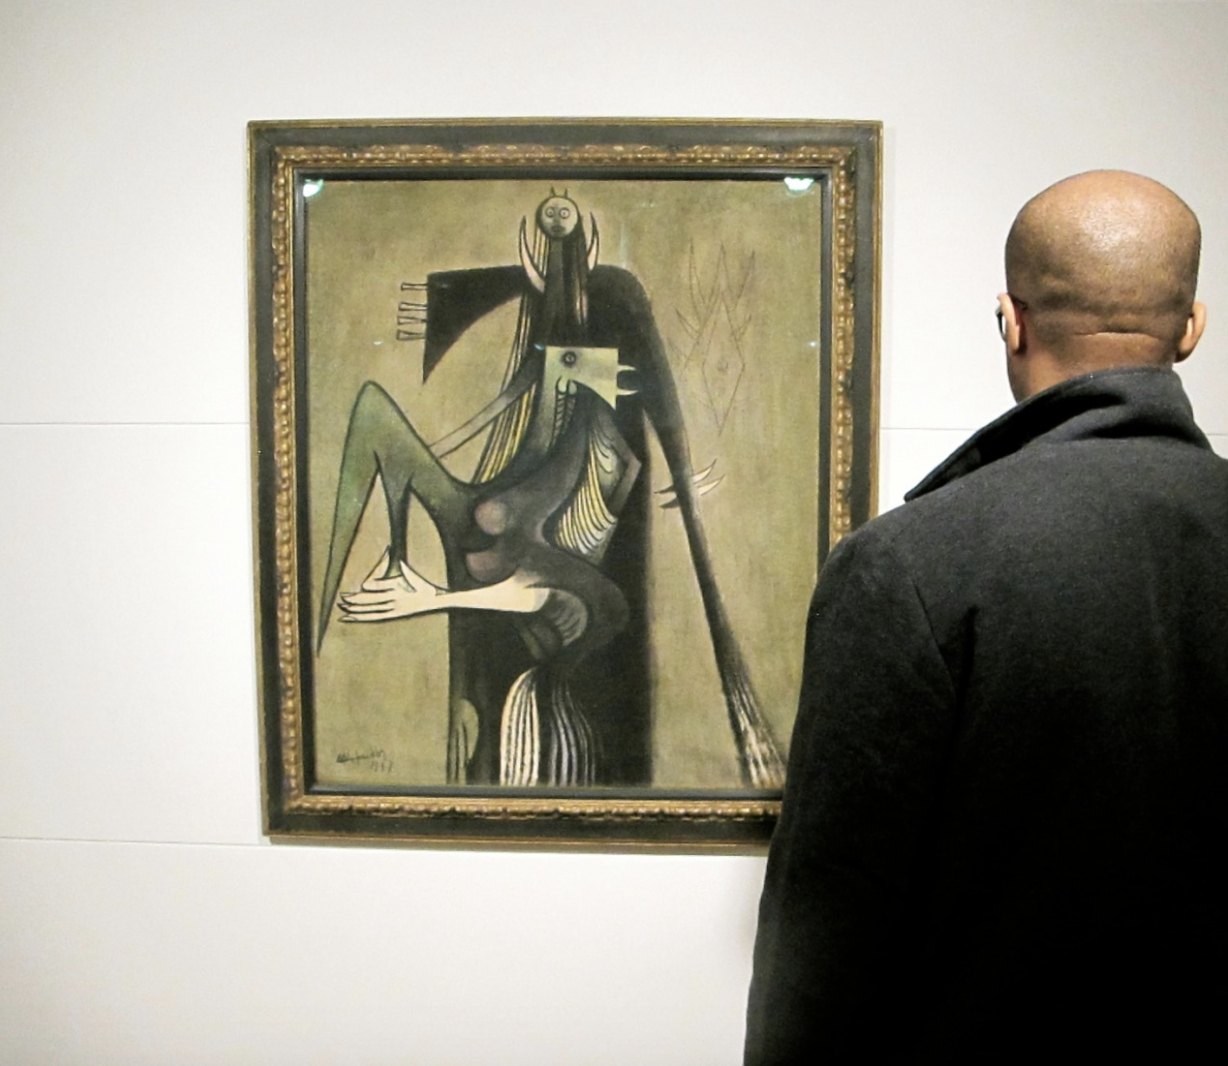 Un Coq pour Chango by Wilfredo Lam, courtesy of San Francisco MoMA